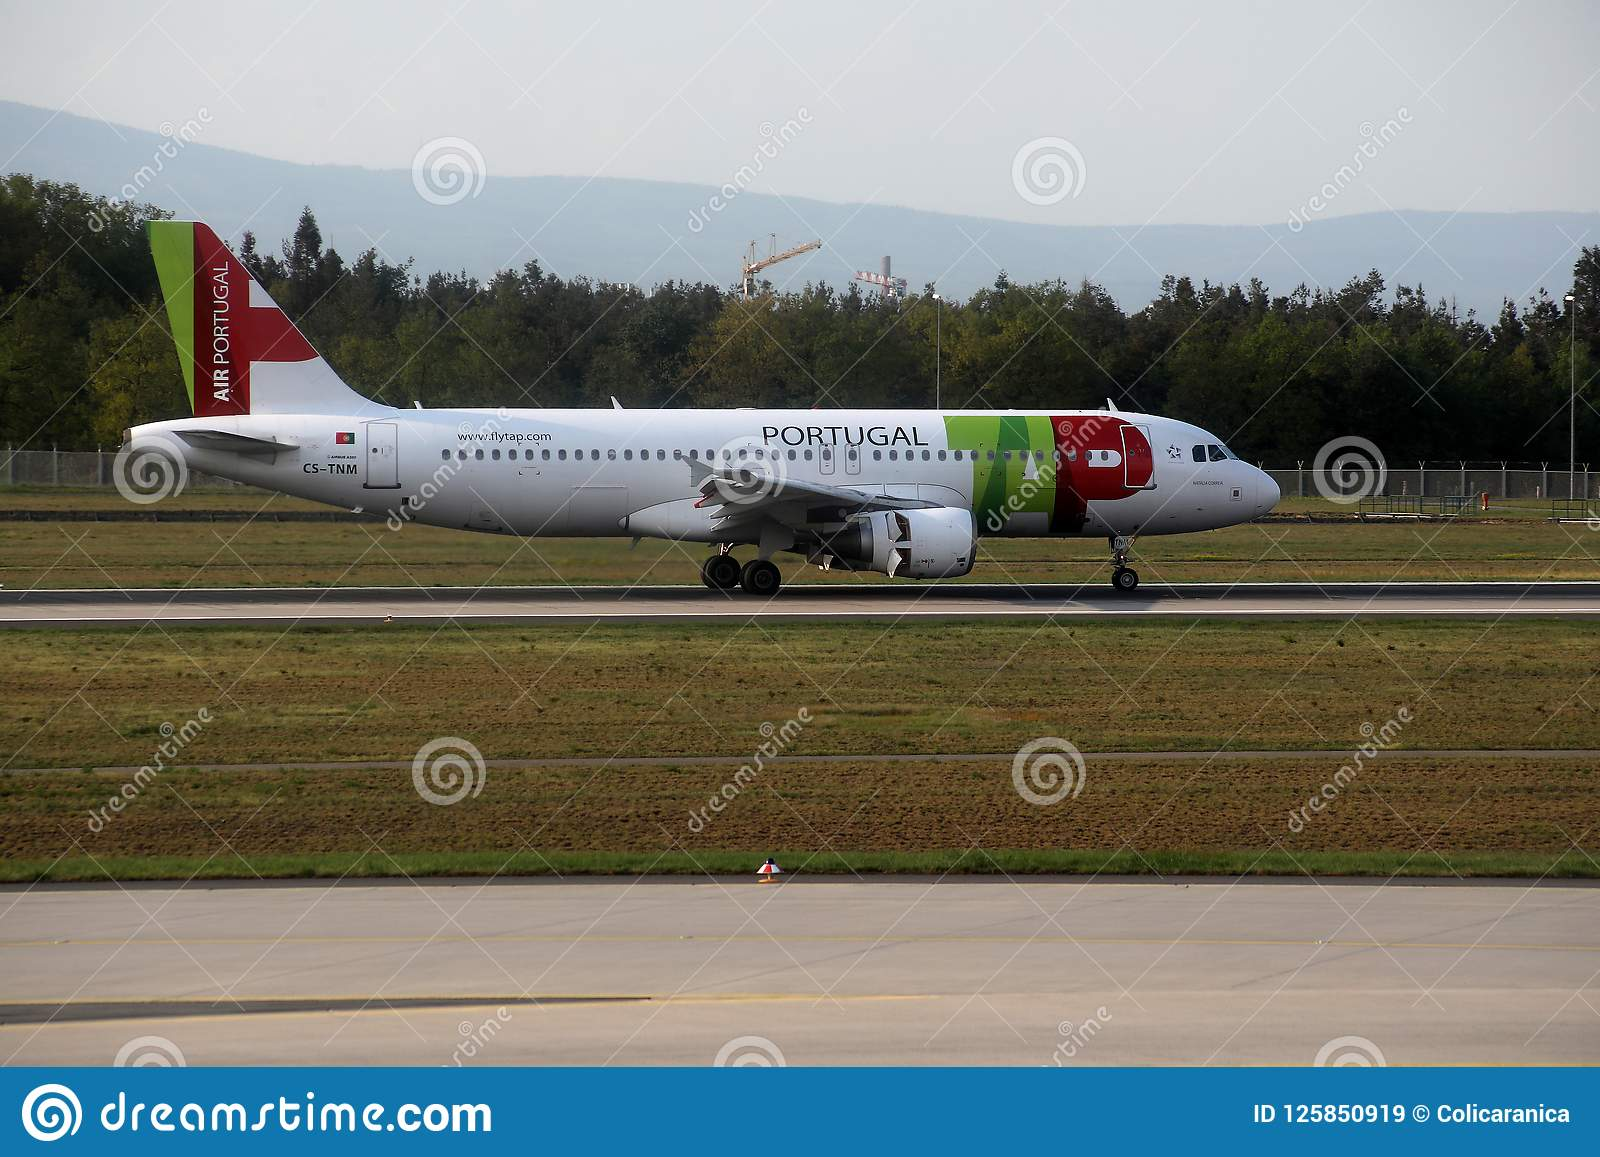 TAP Air Portugal plane on runway in Munich Airport, Germany, MUC